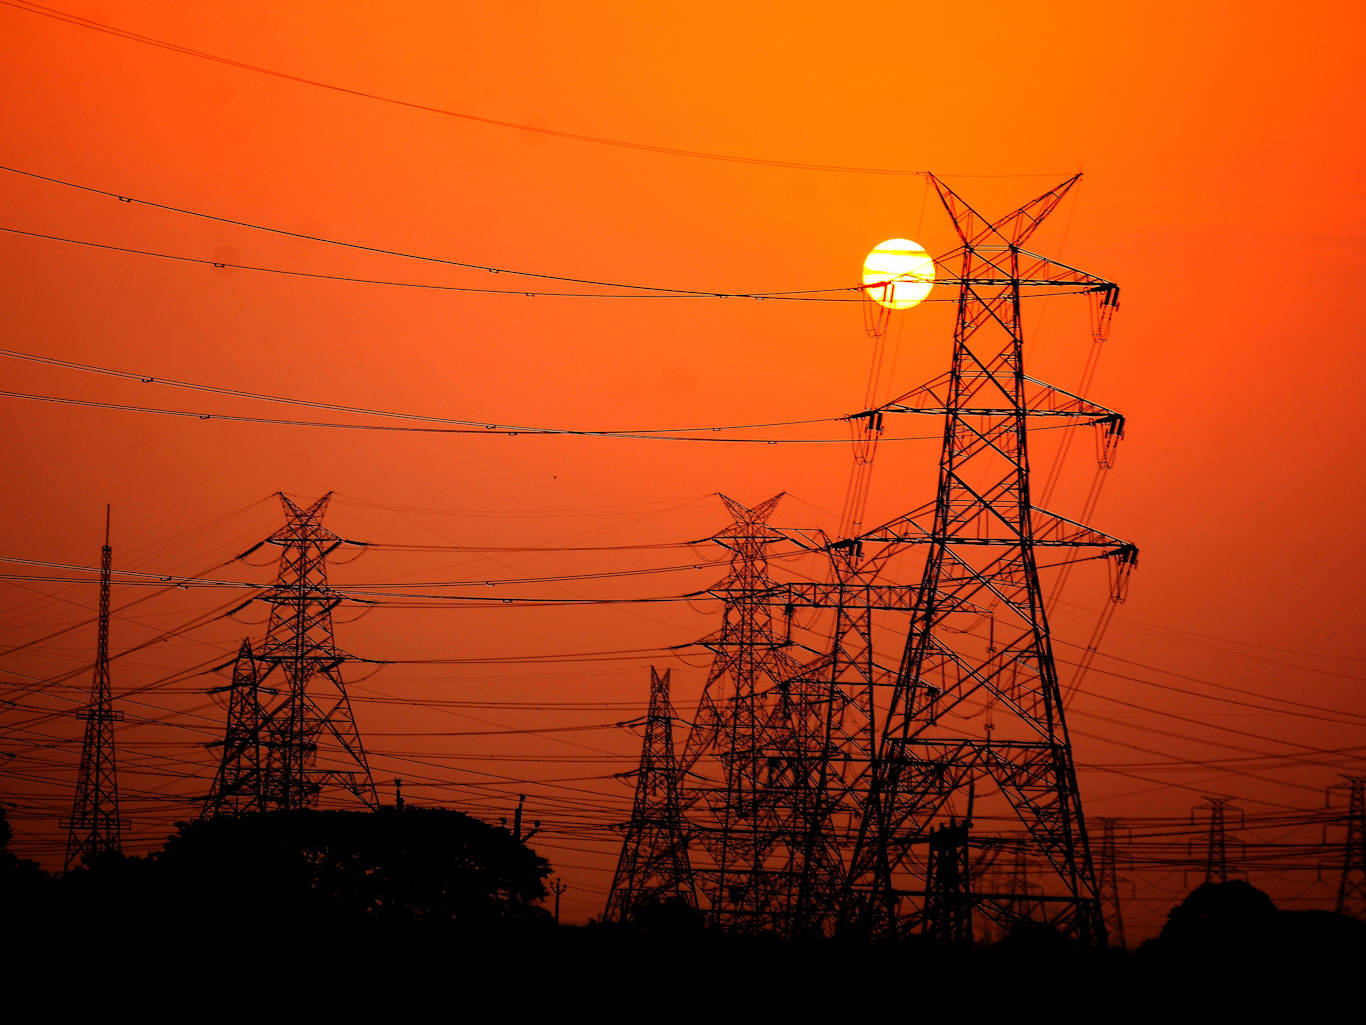 India's power grids gear up for 1.3 billion people switching of their lights on April 5